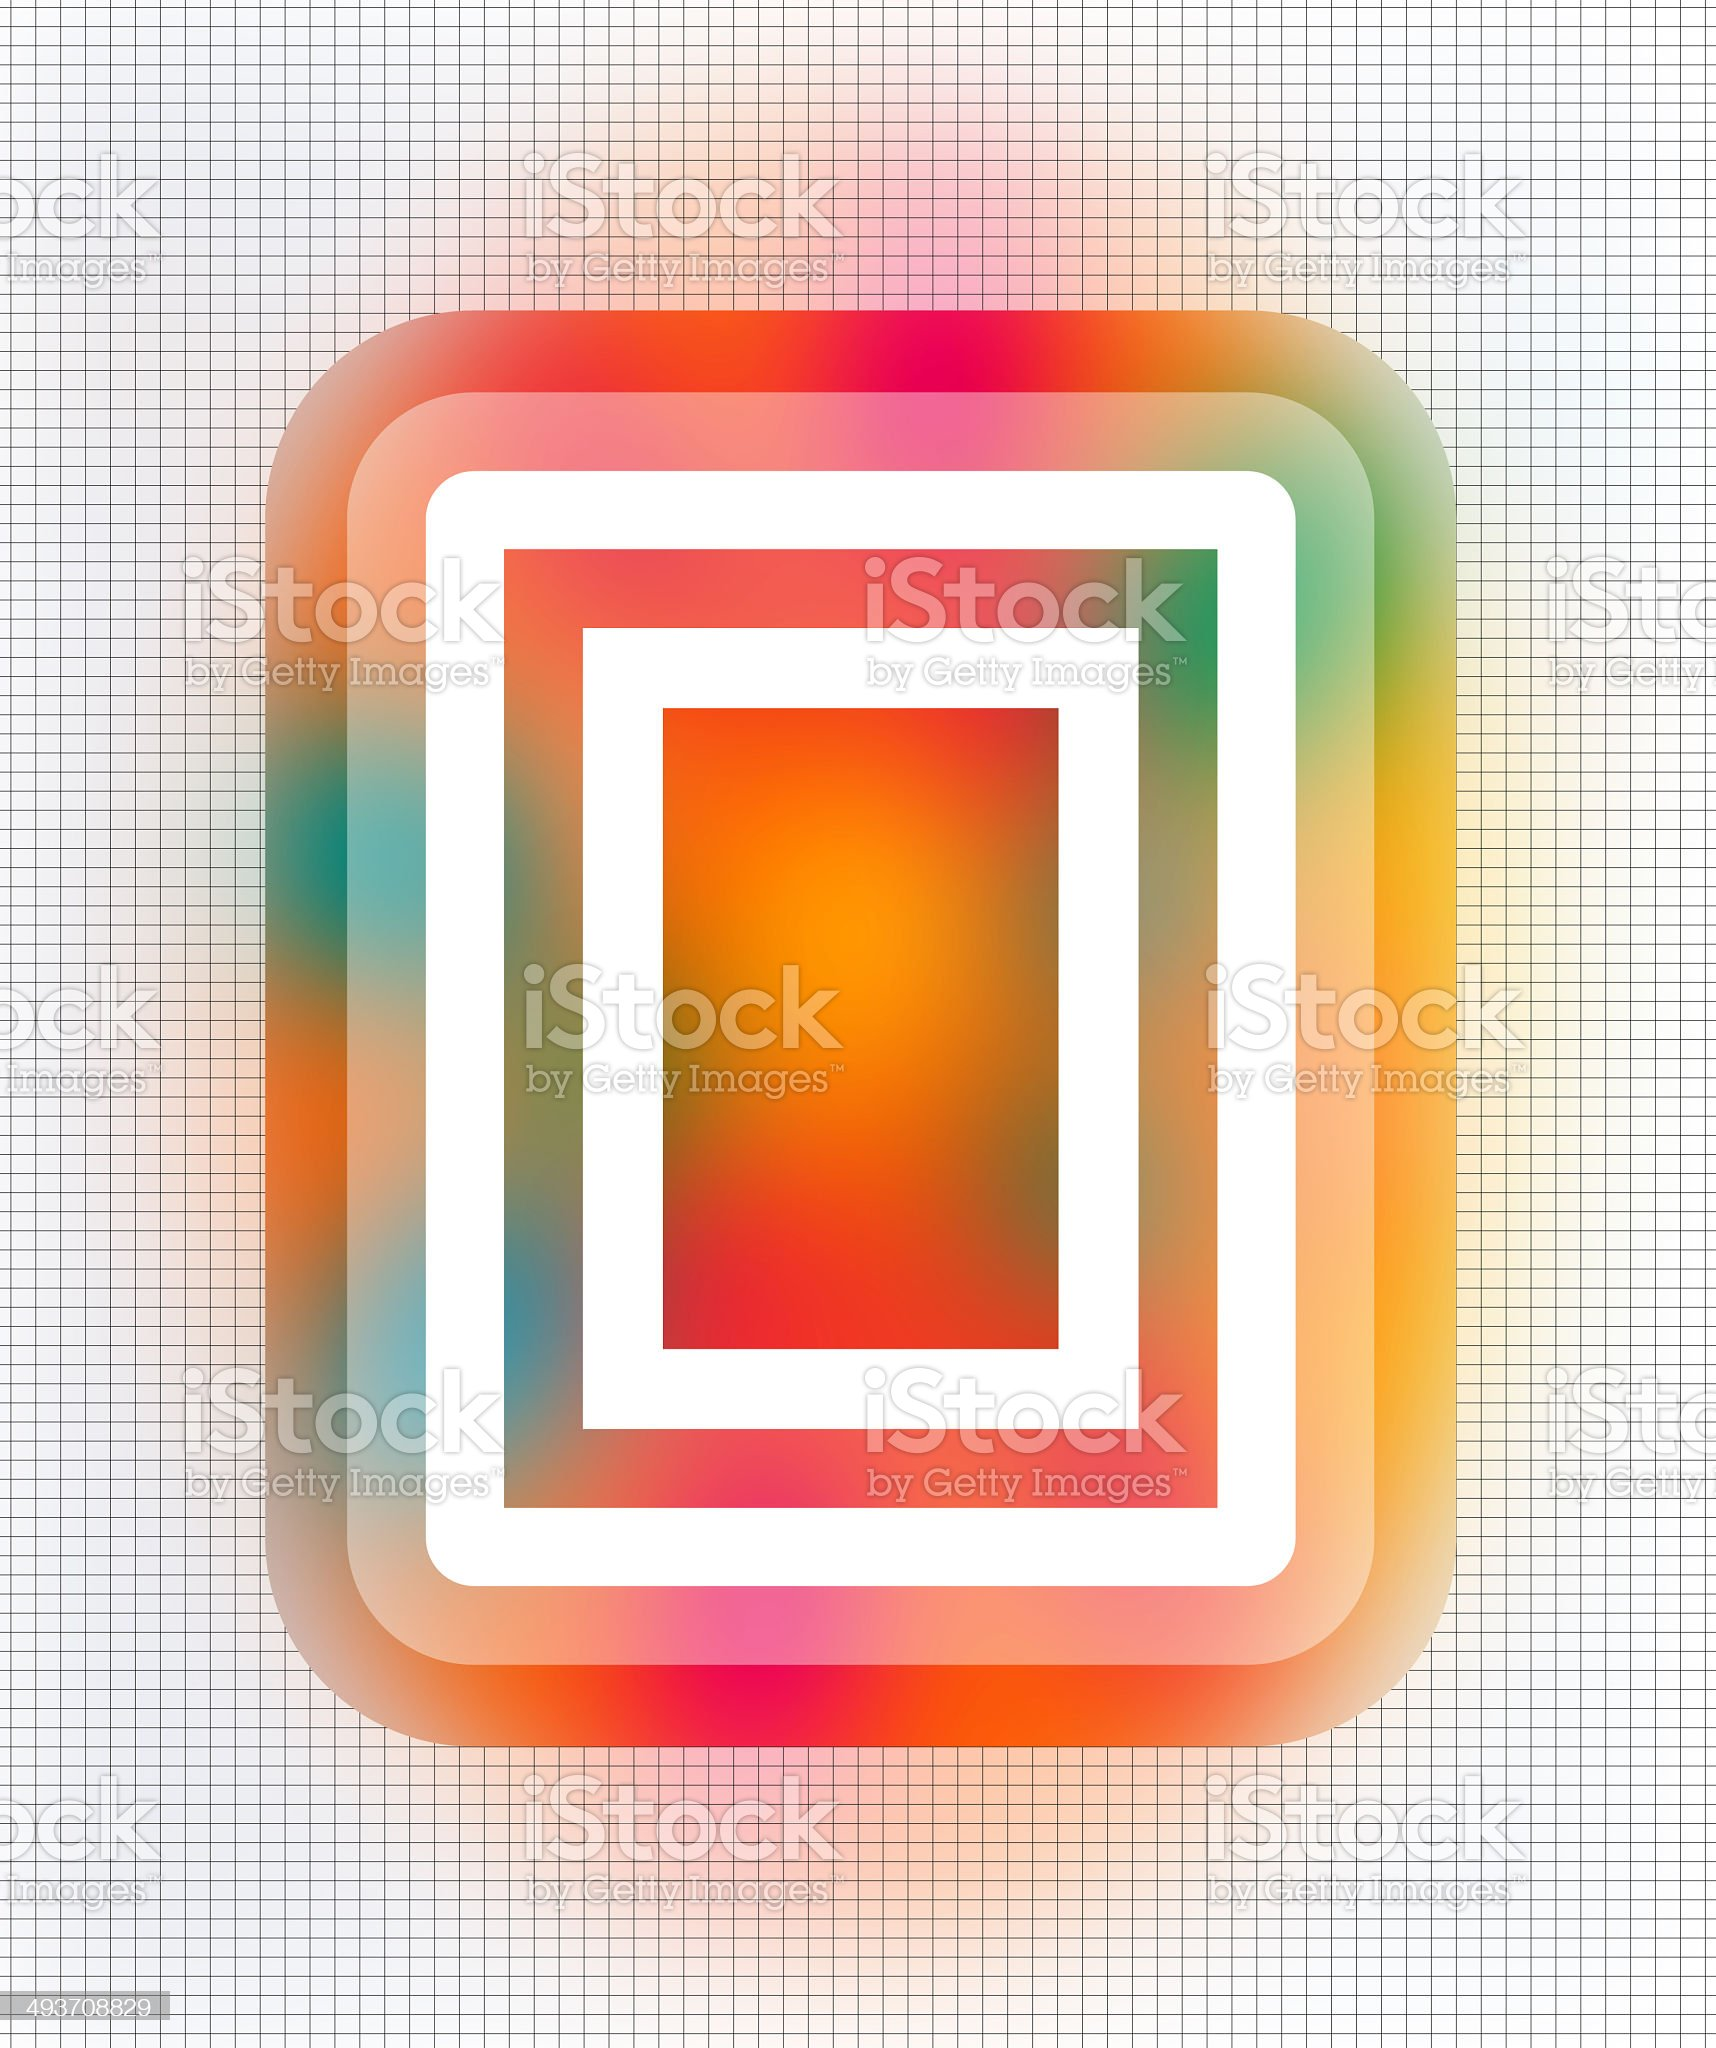 Rectangle shapes surrounded by colorful patches royalty-free stock photo